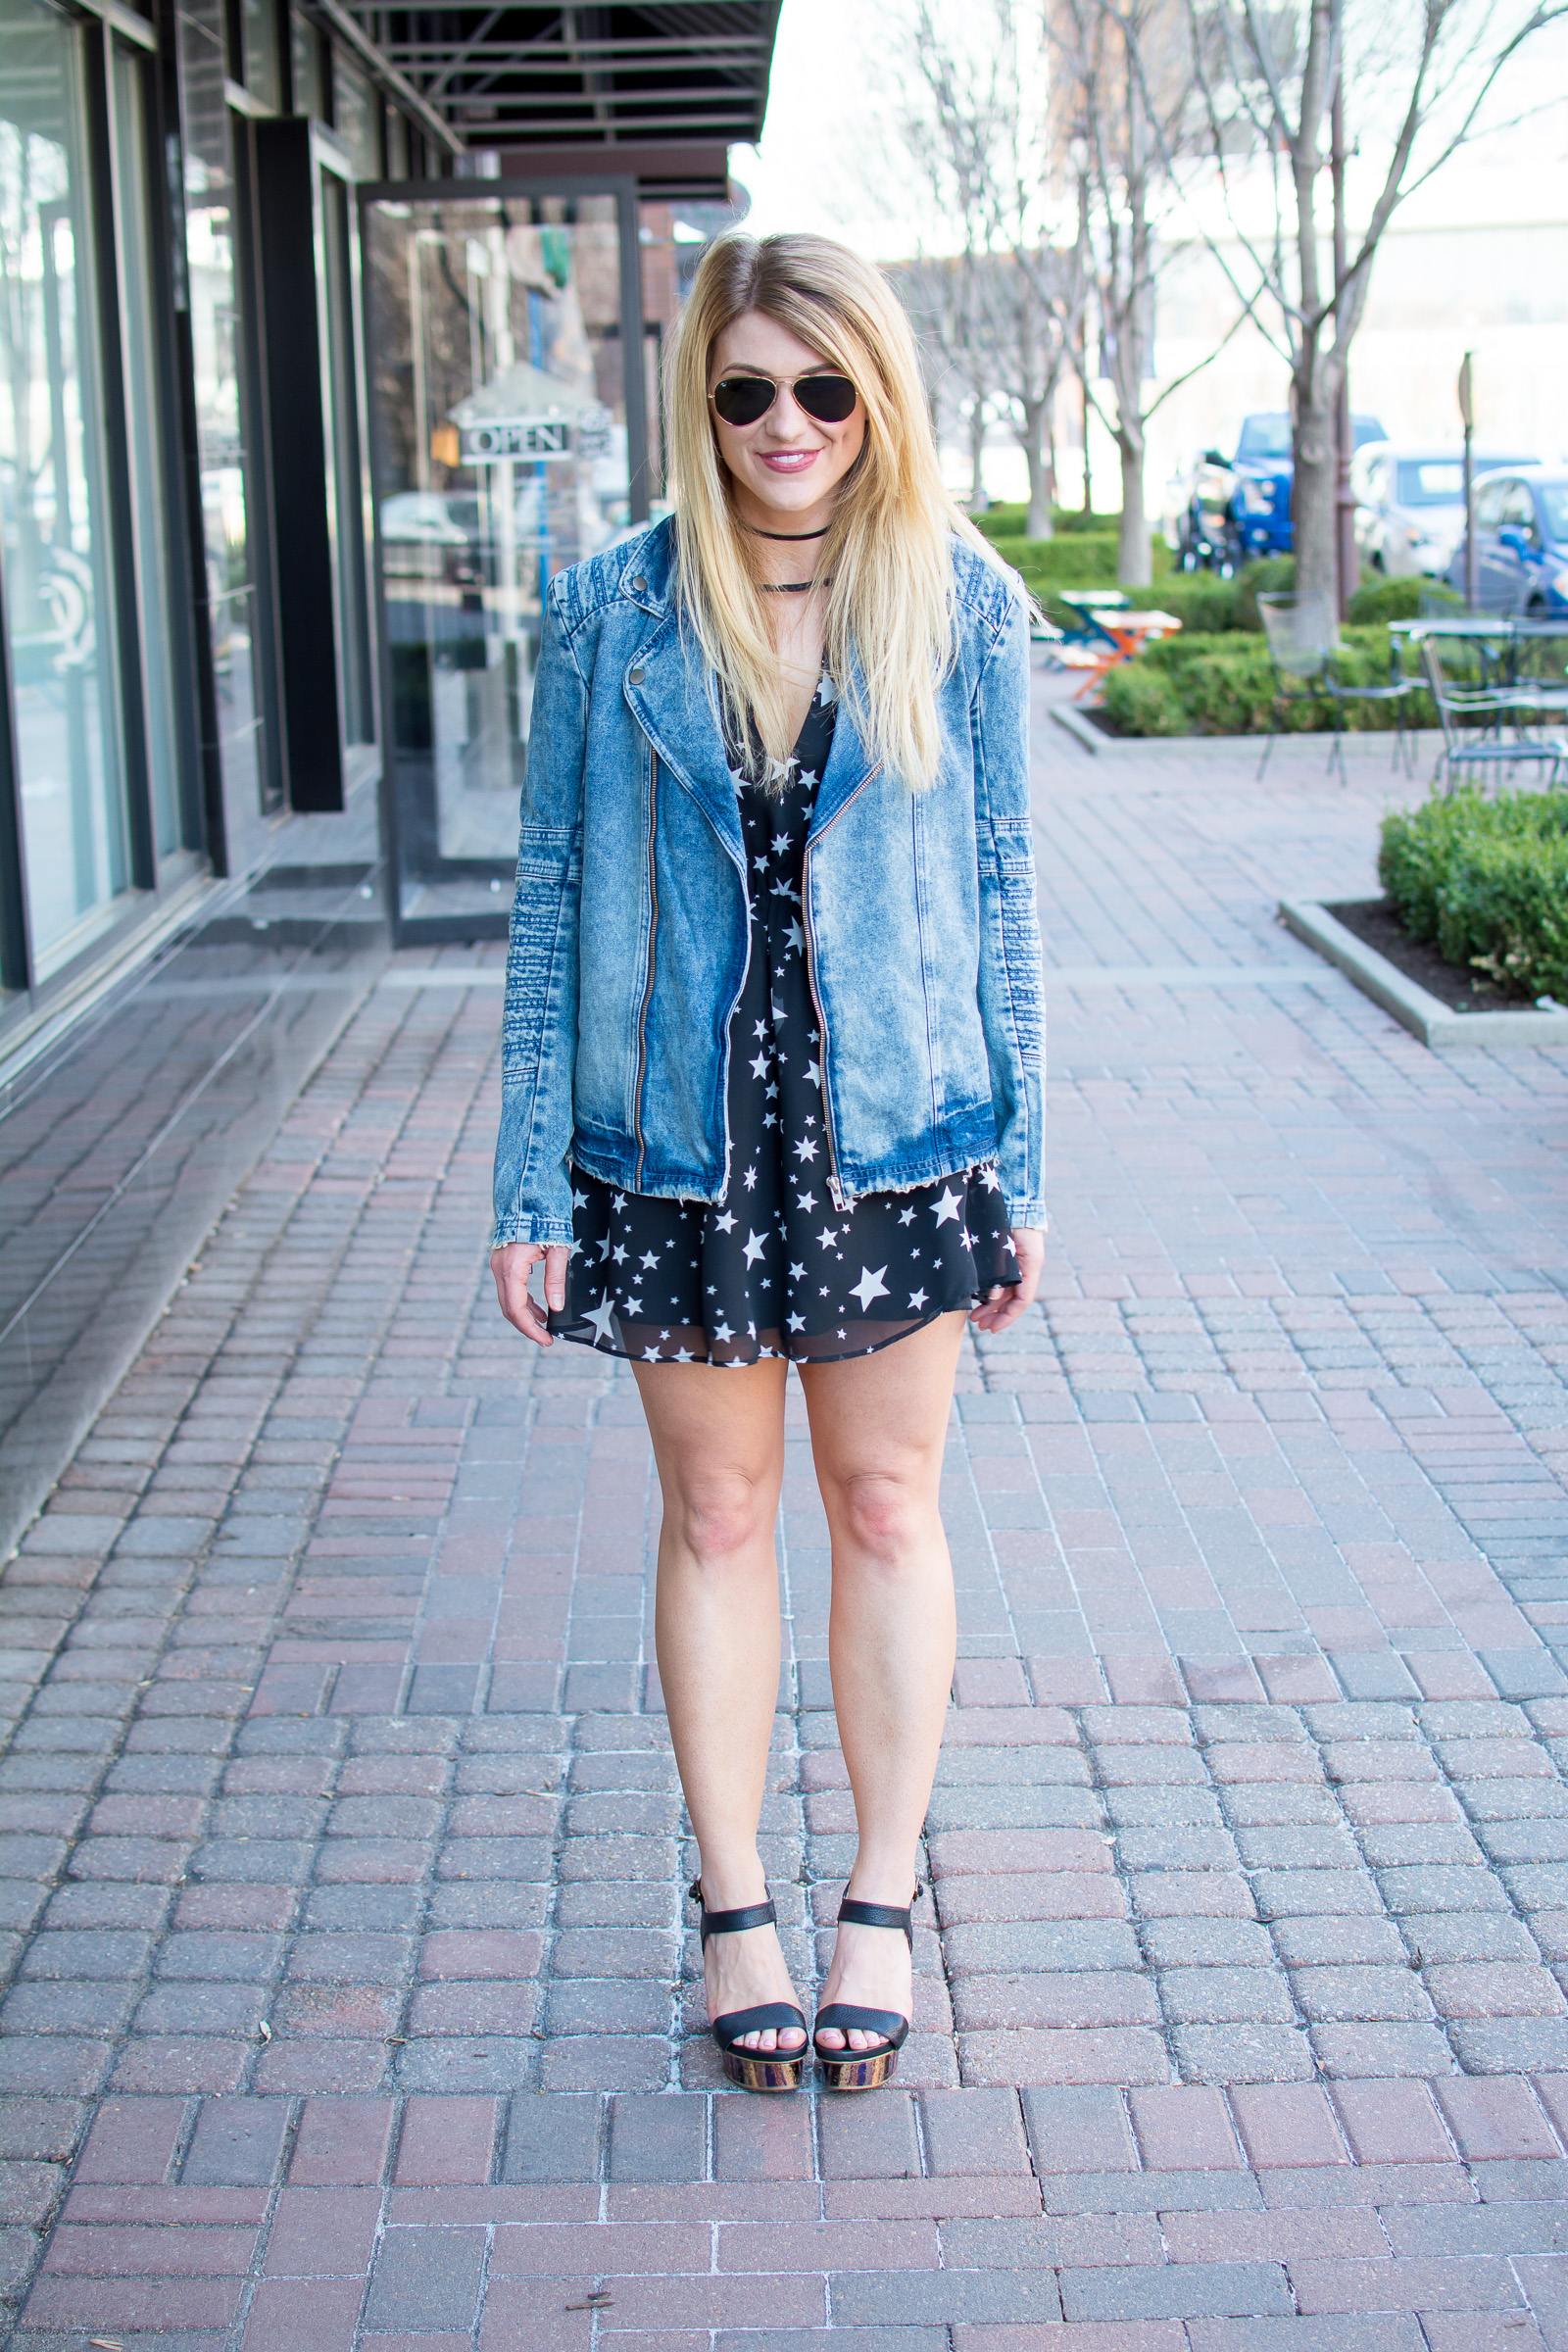 Spring Outfit Idea: Star Print Dress with a Men's Denim Jacket. | Ashley from Le Stylo Rouge